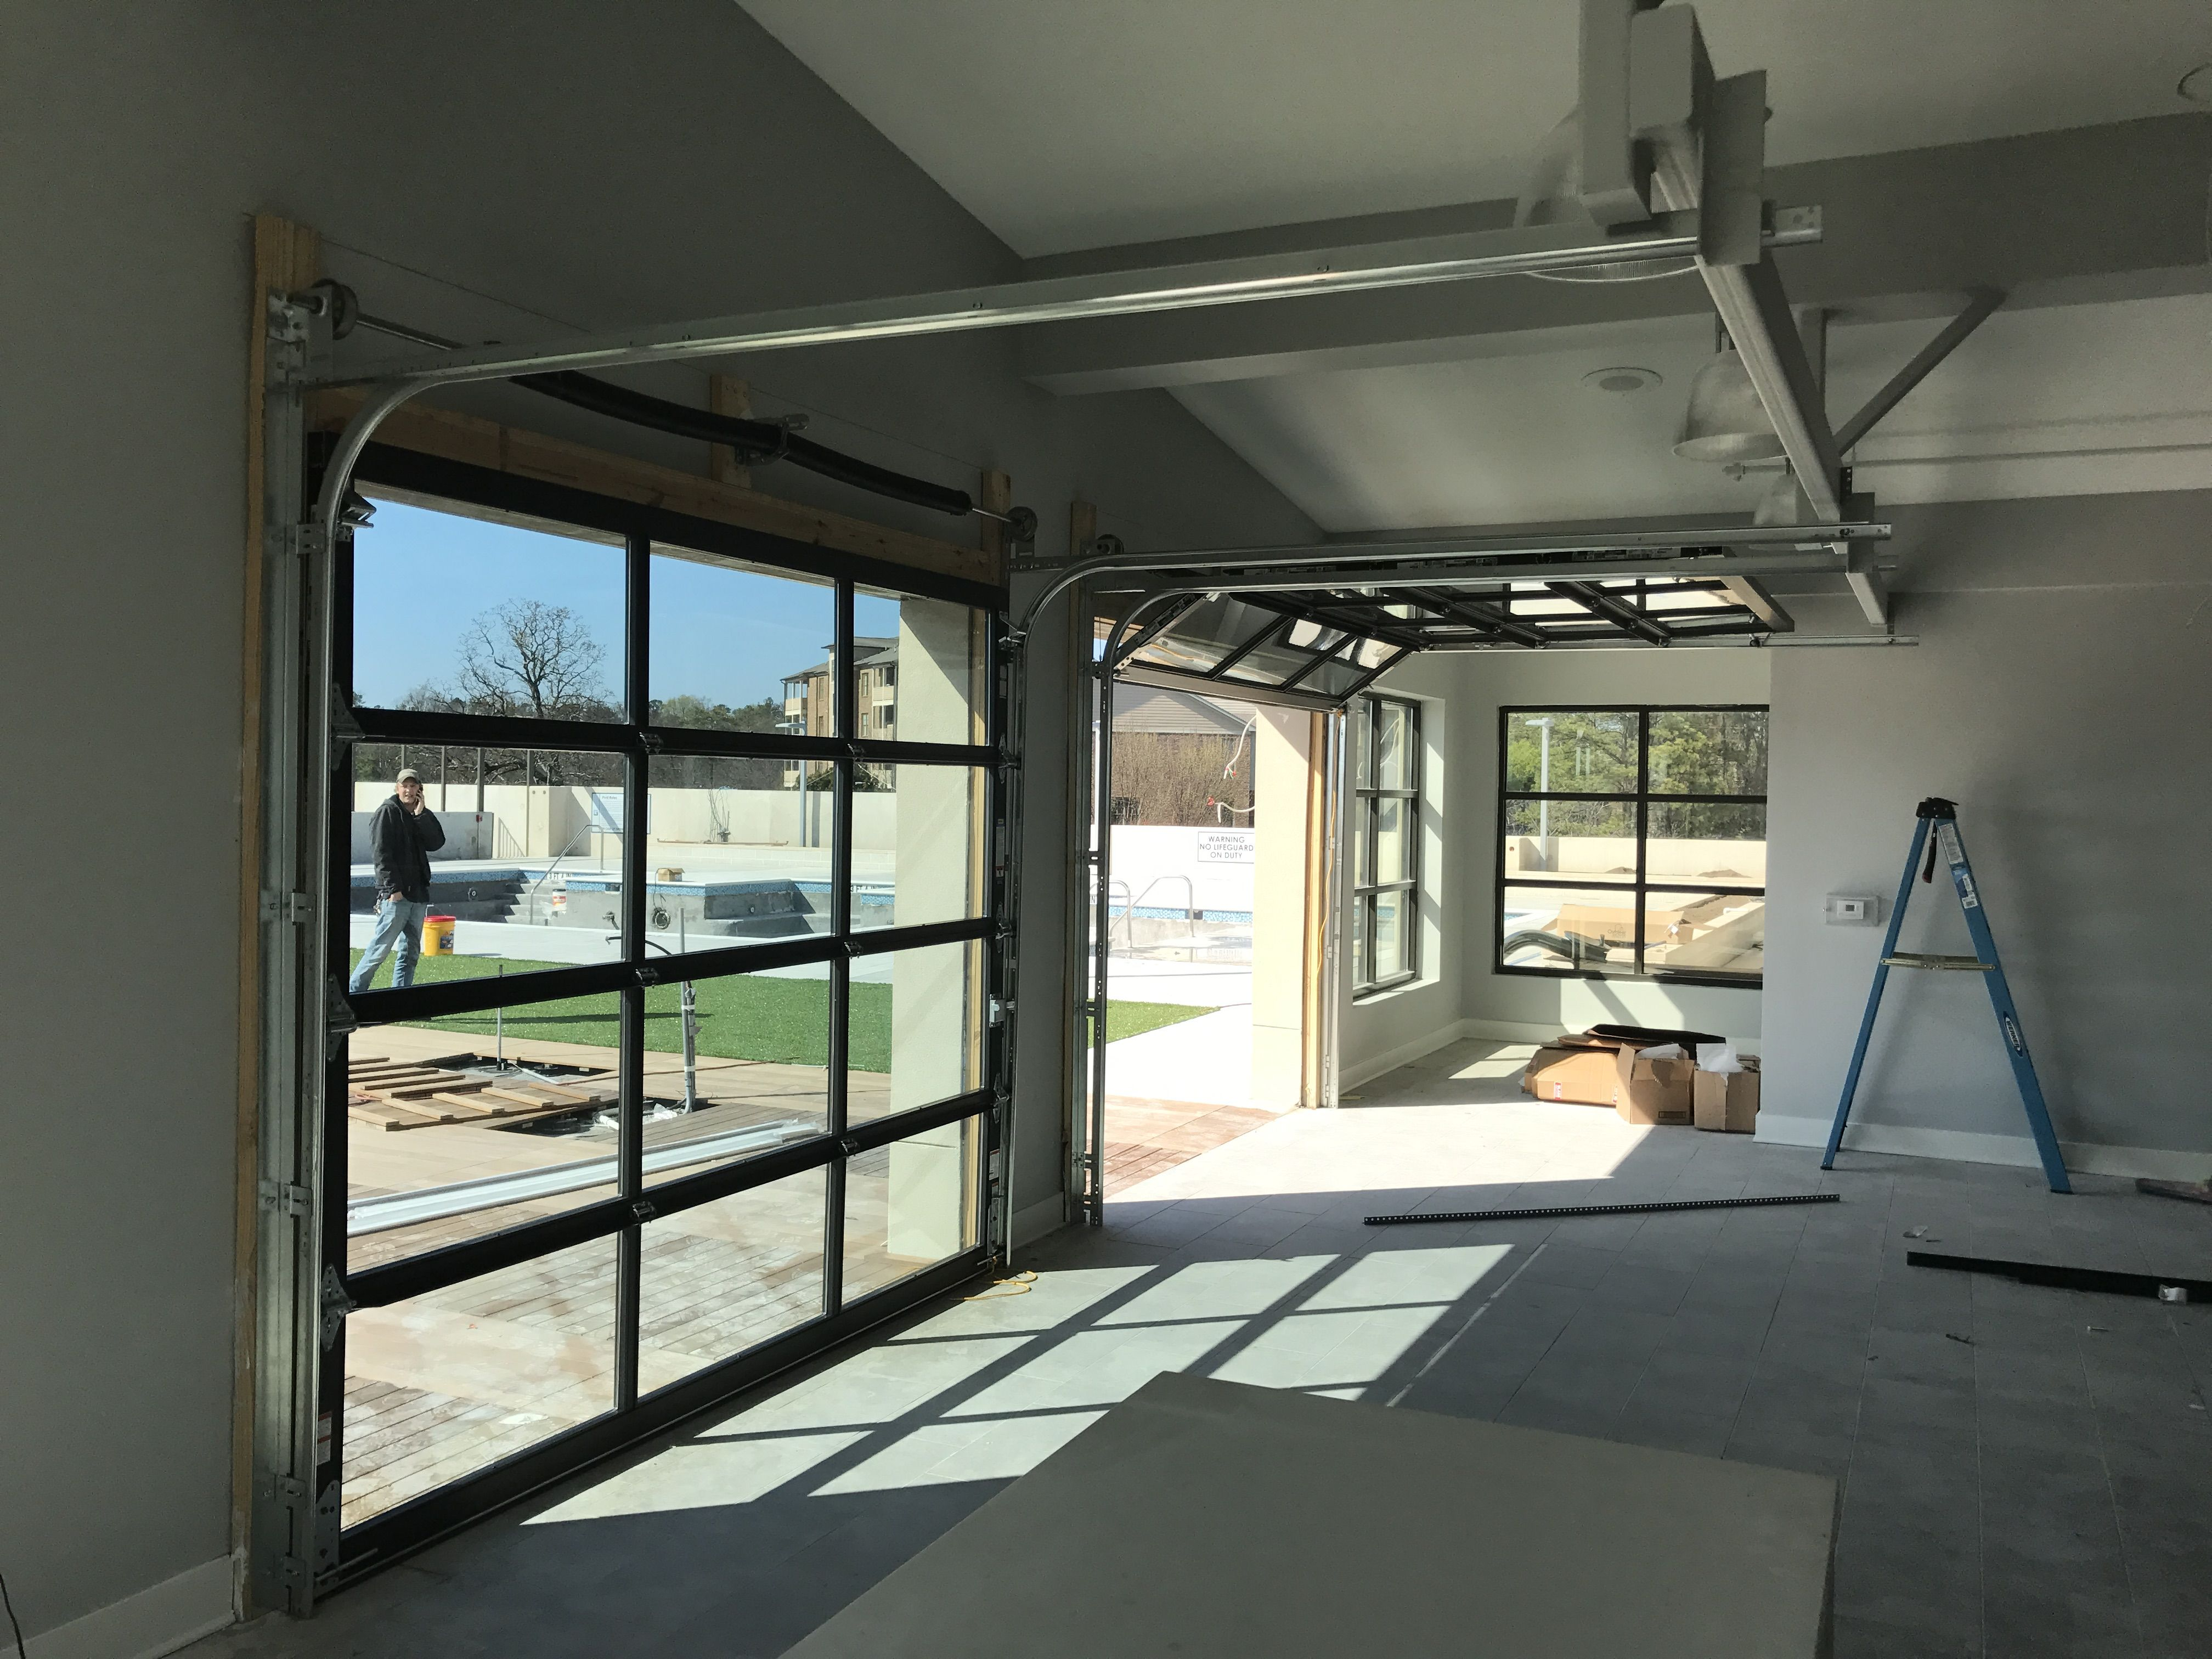 full view glass garage door separating game room from outdoor living and pool